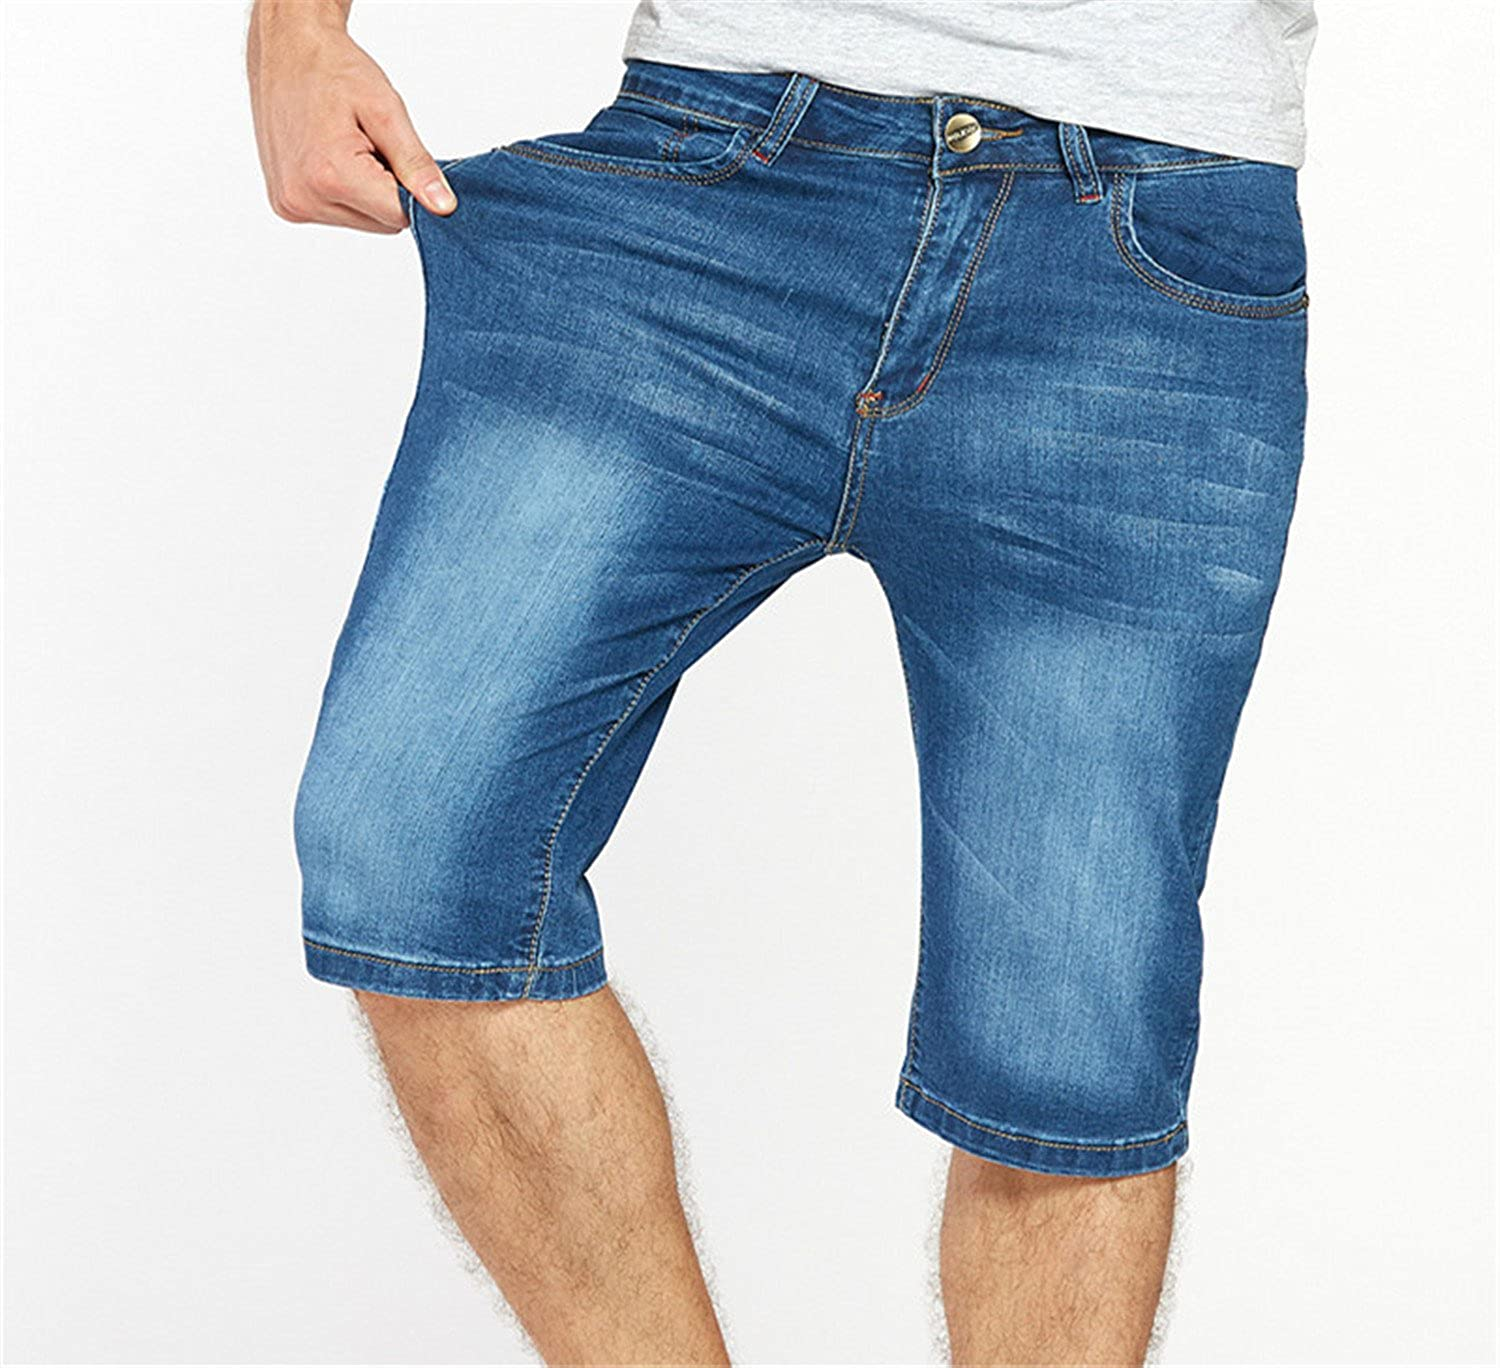 dc19028670b Woodin Mens Jeans Shorts Plus Size Stretch Thin Denim Jeans Short For Men  Pants Summer at Amazon Men s Clothing store